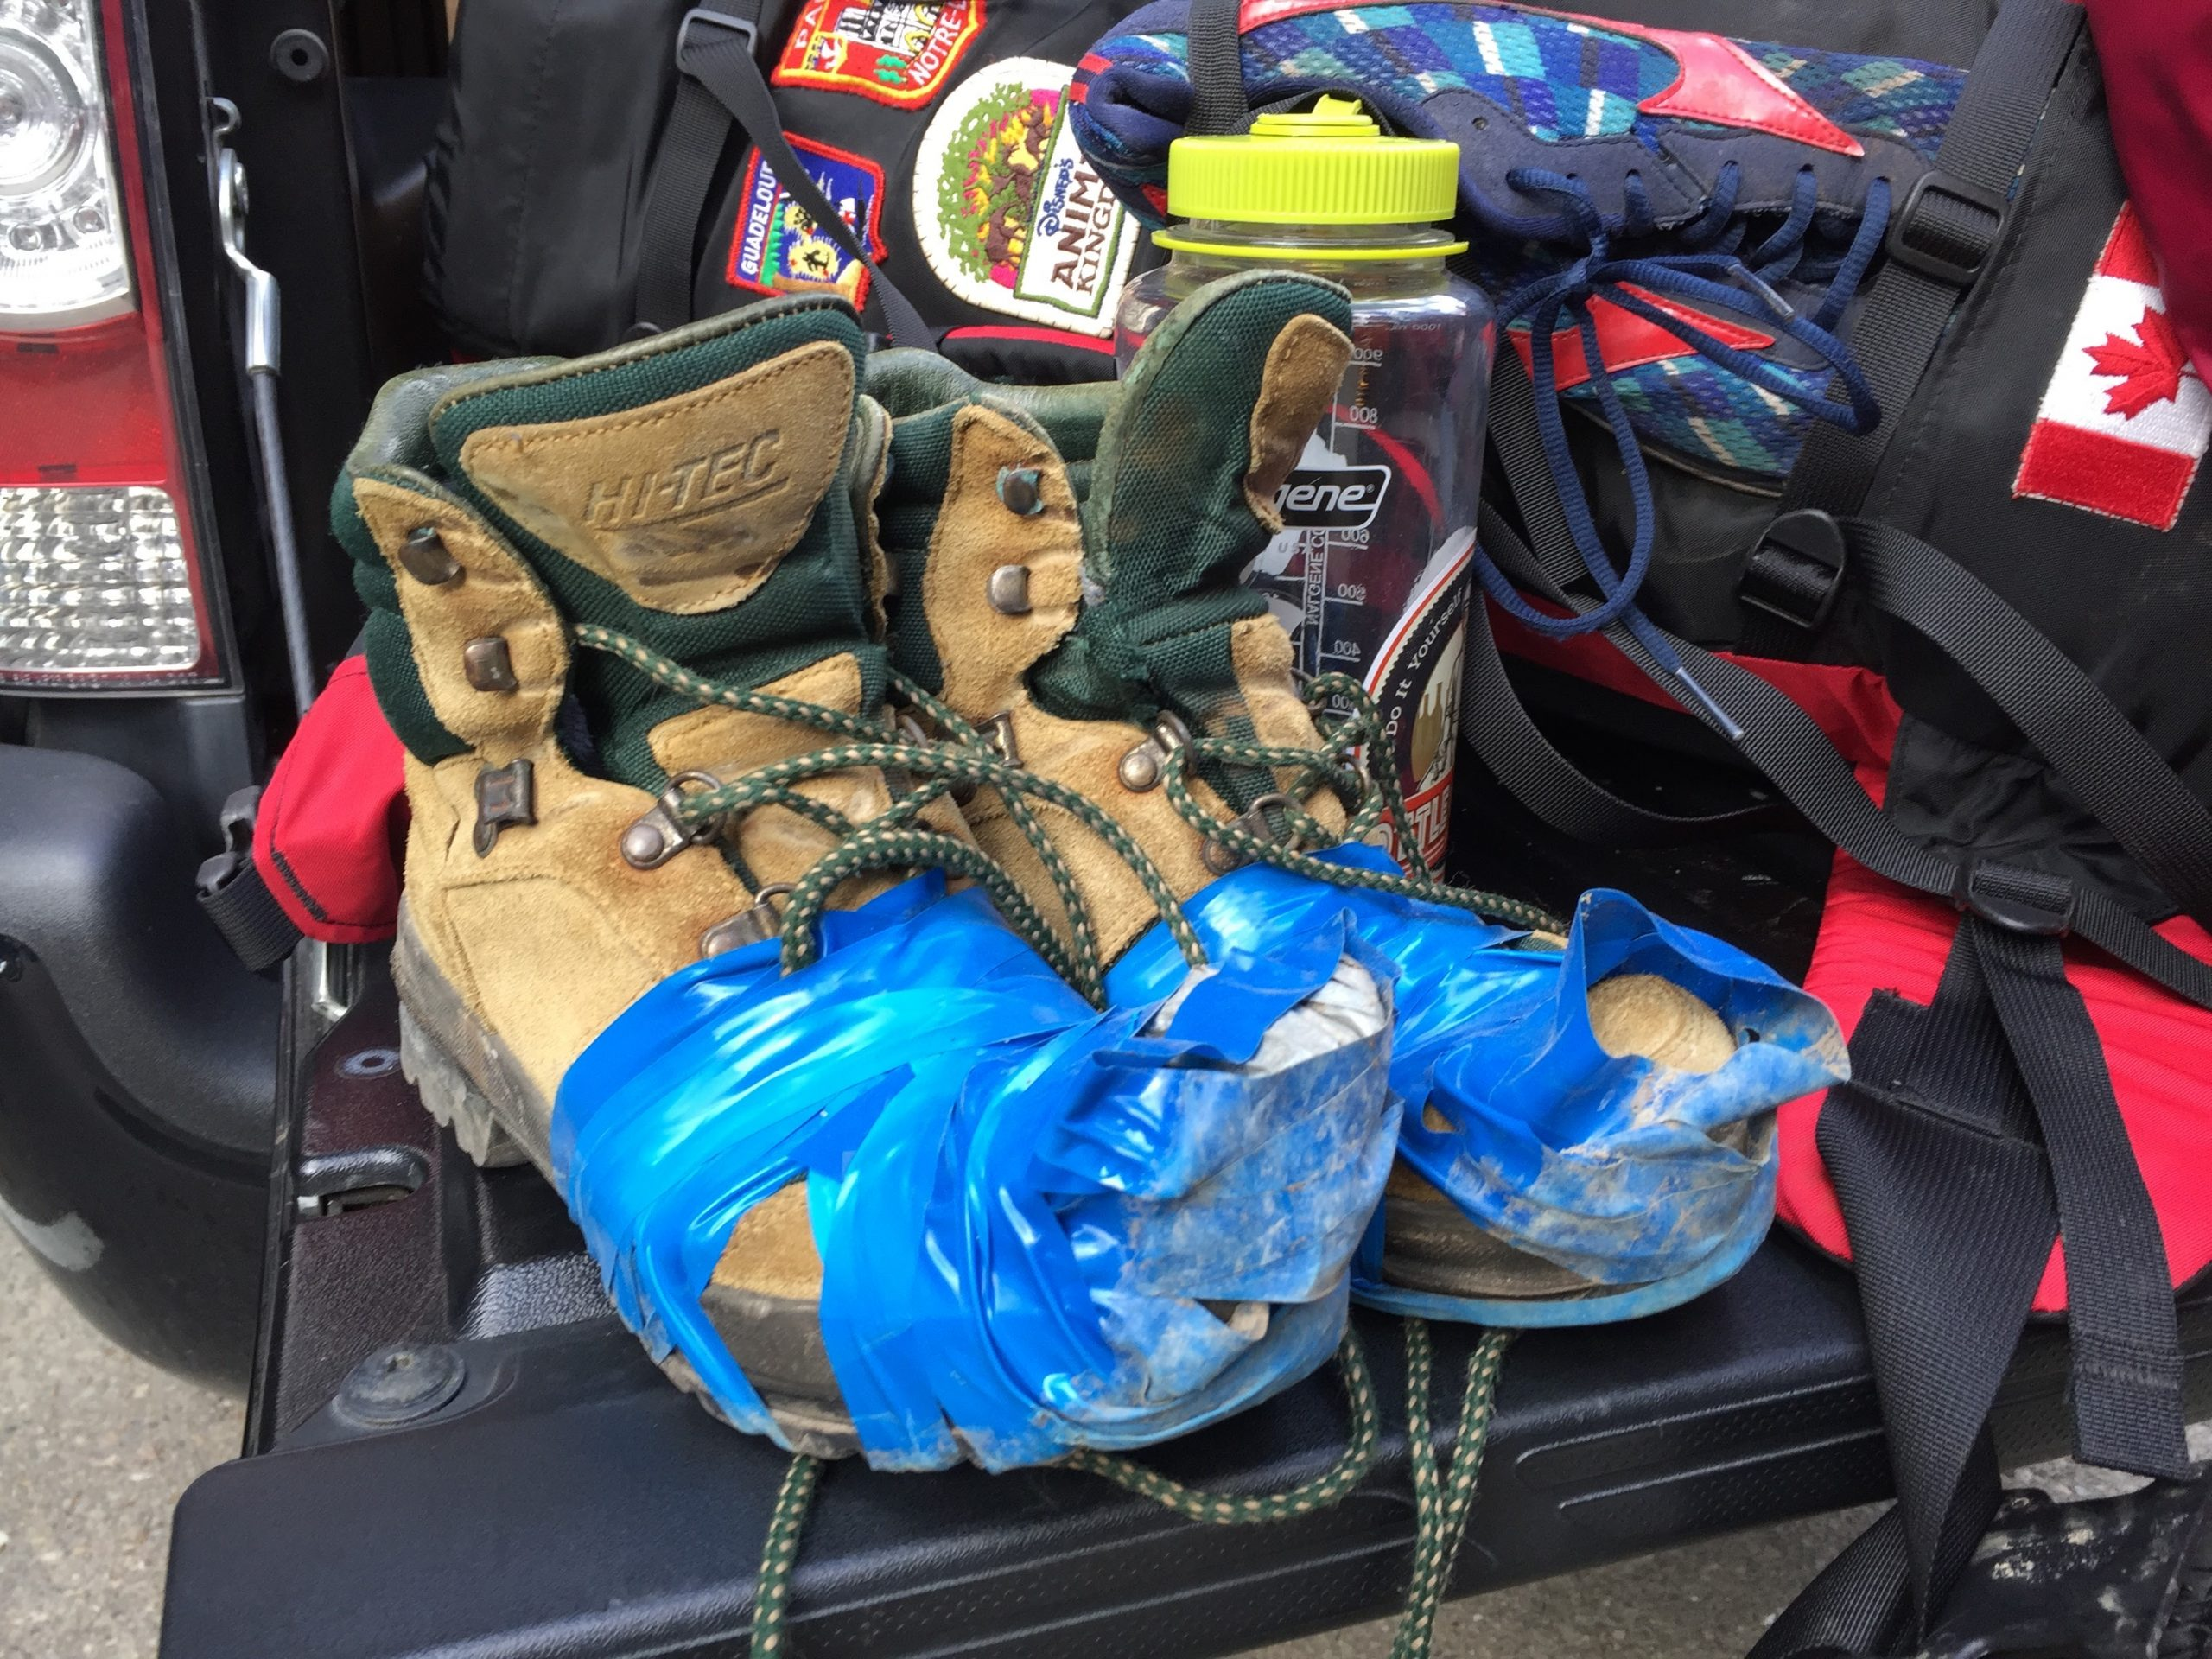 A pair of nearly-destroyed hiking boots wrapped in blue tape sit in a pile of hiking gear.